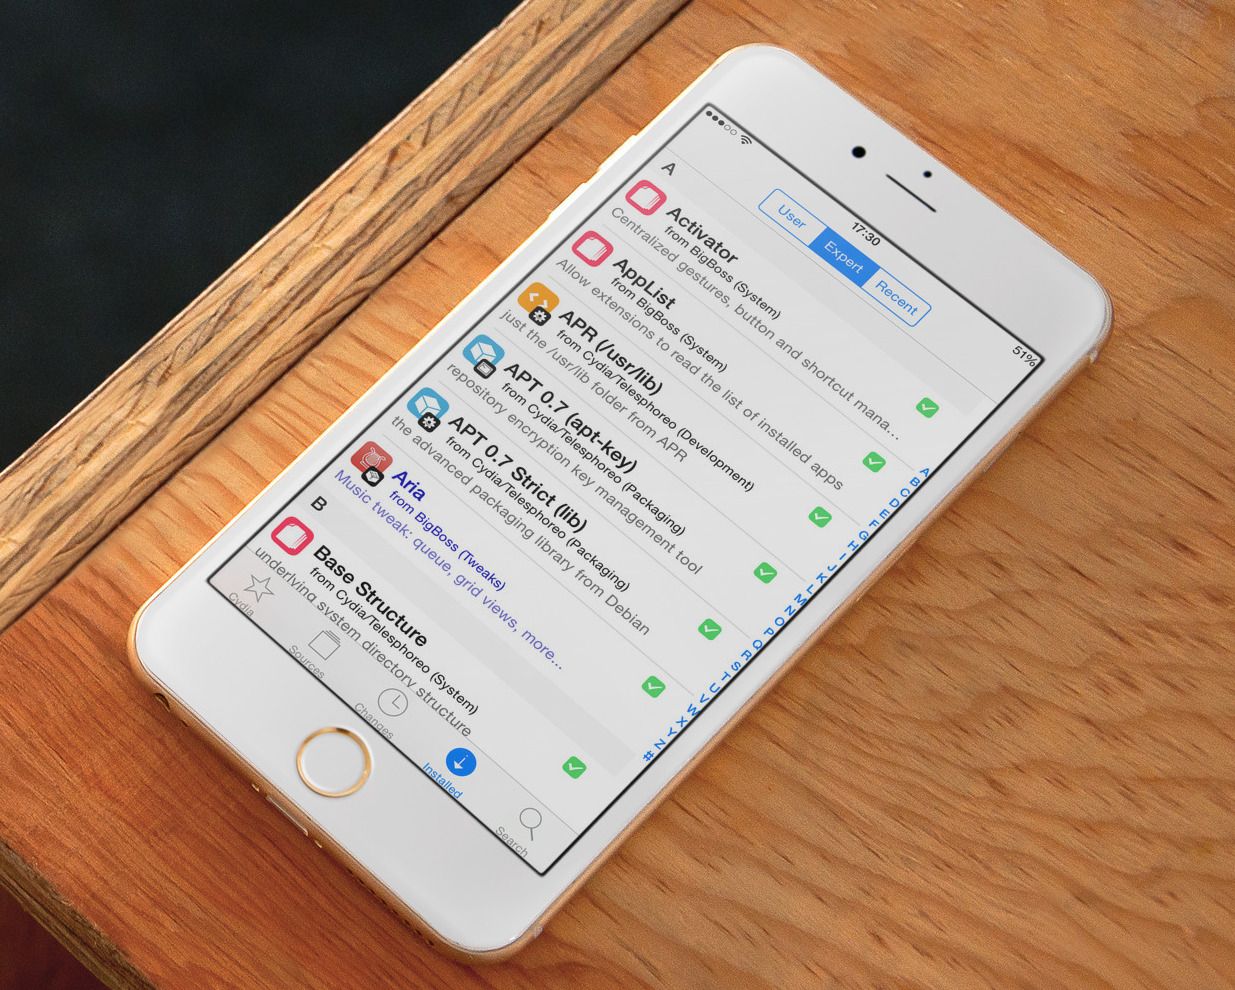 Cydia Expert mode iPhone 6